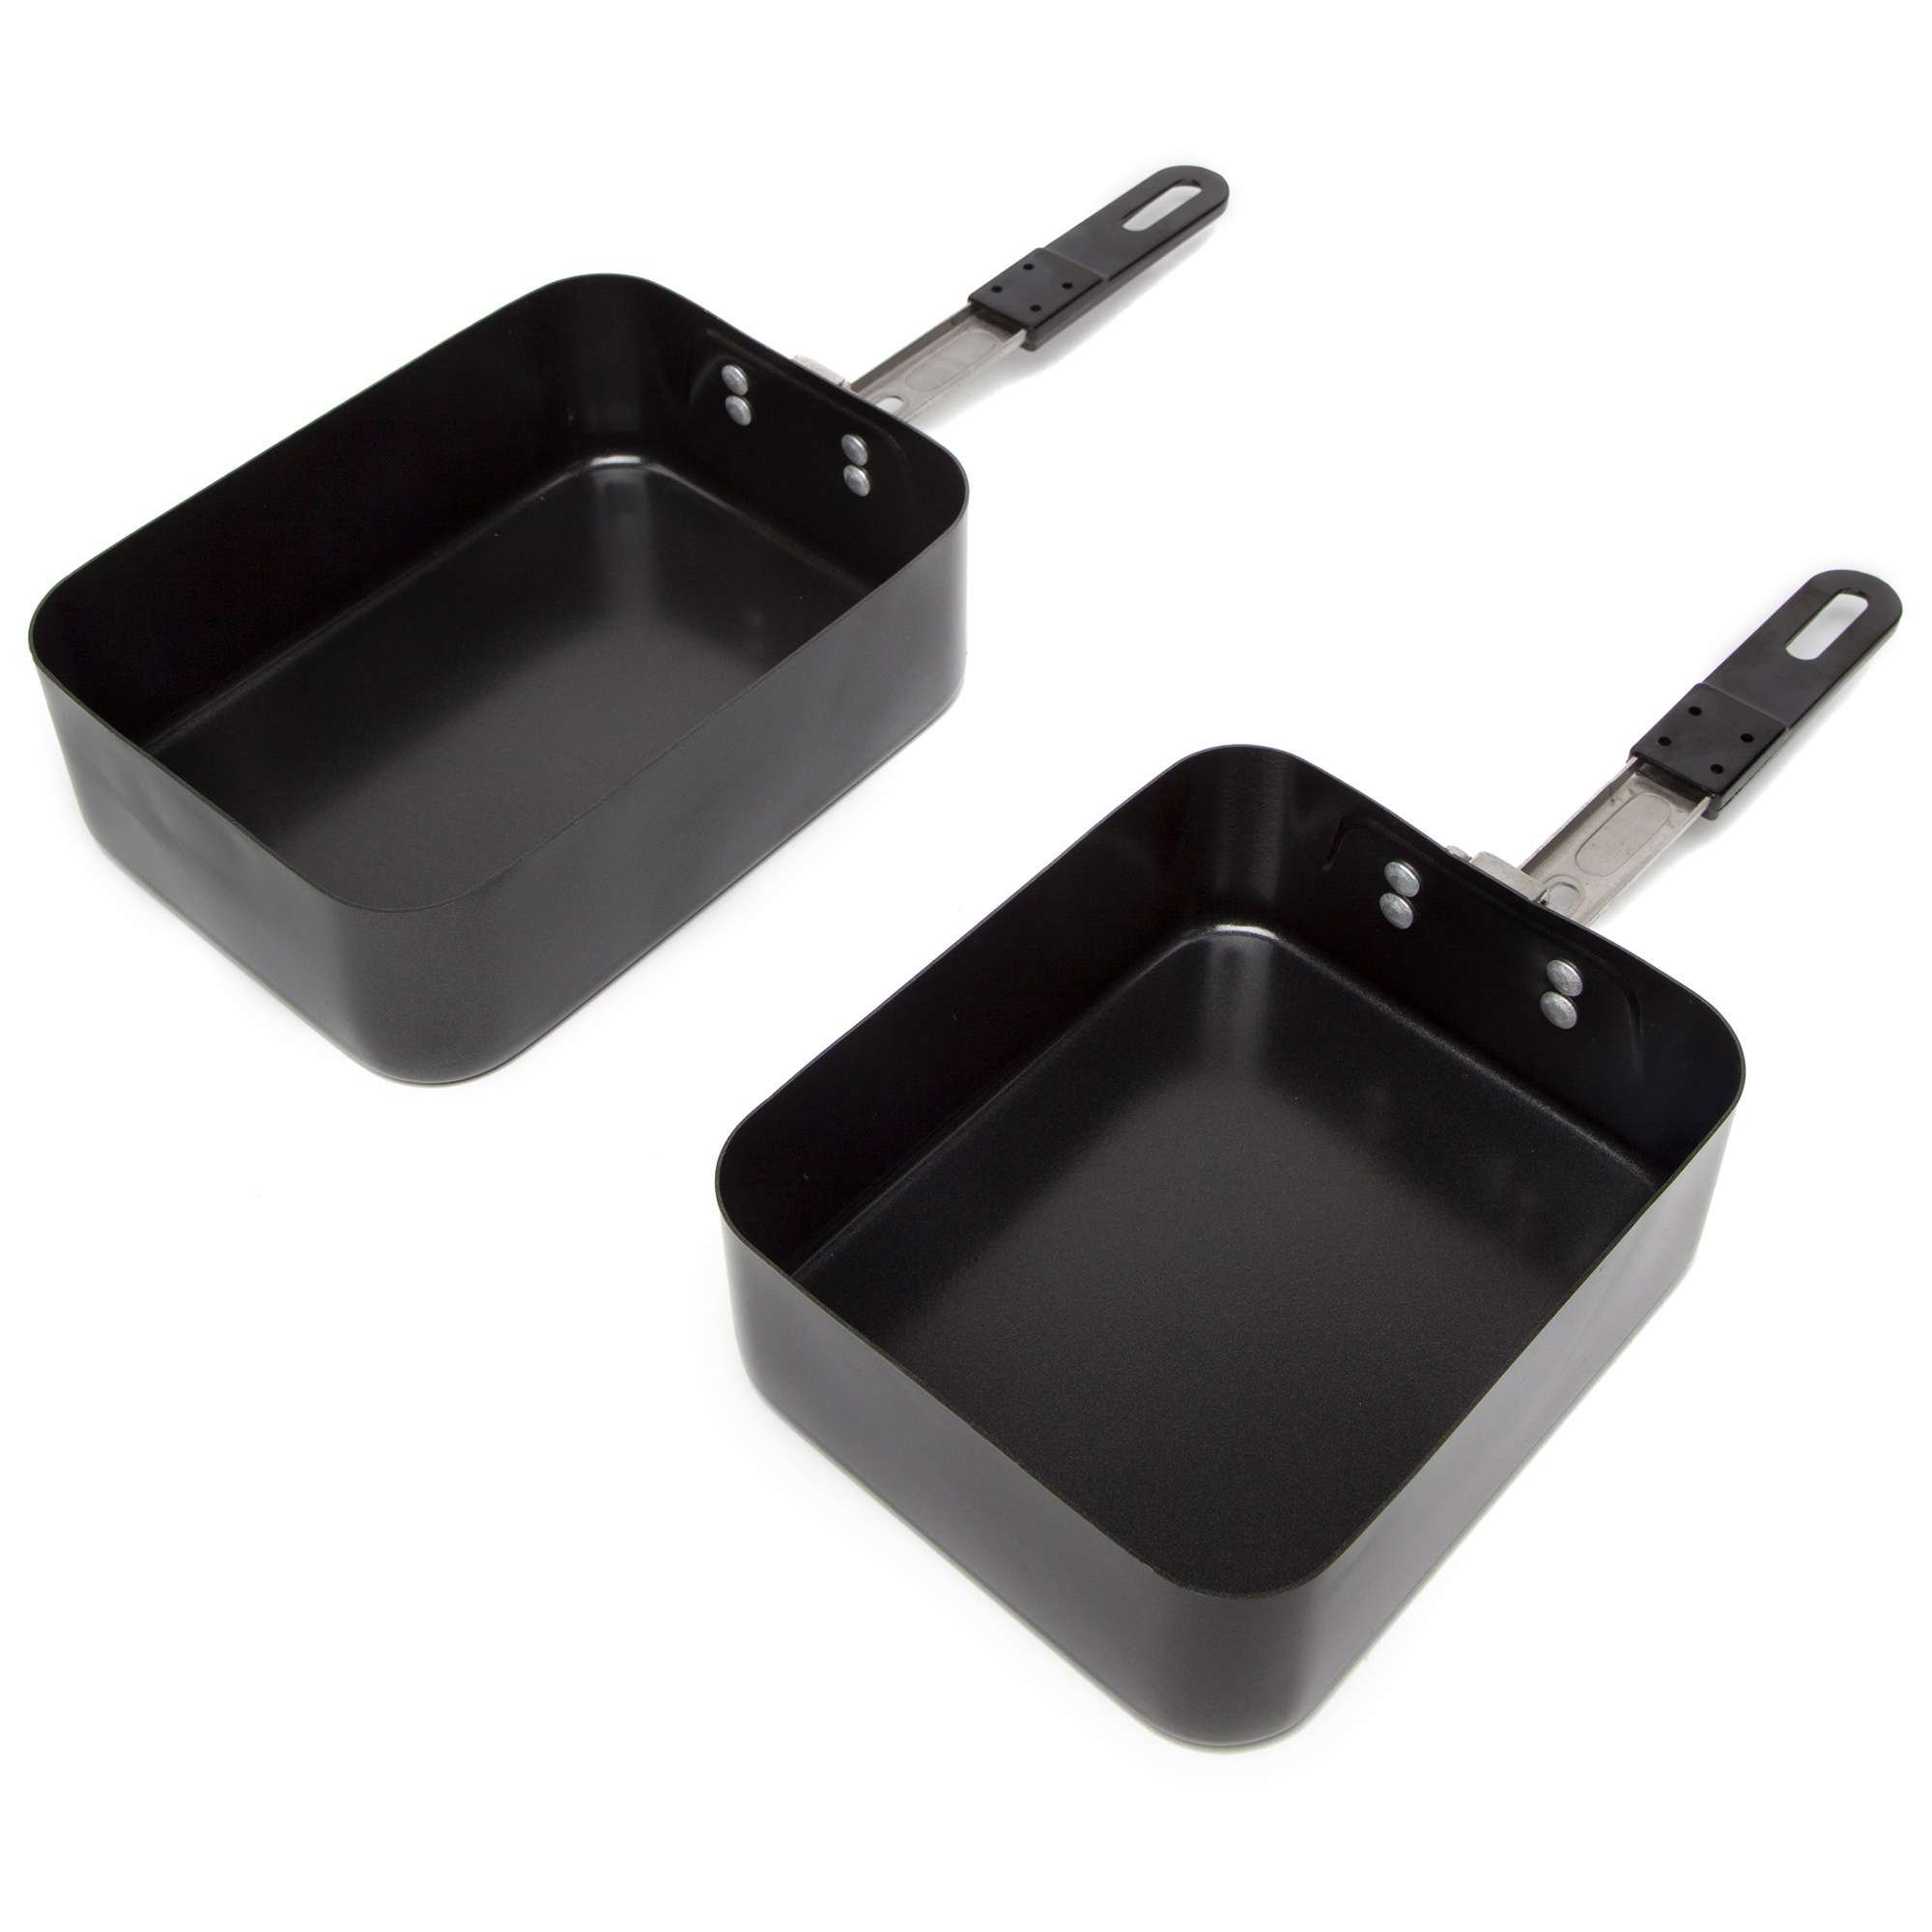 VANGO Non-Stick Mess Tins - 2 Pack